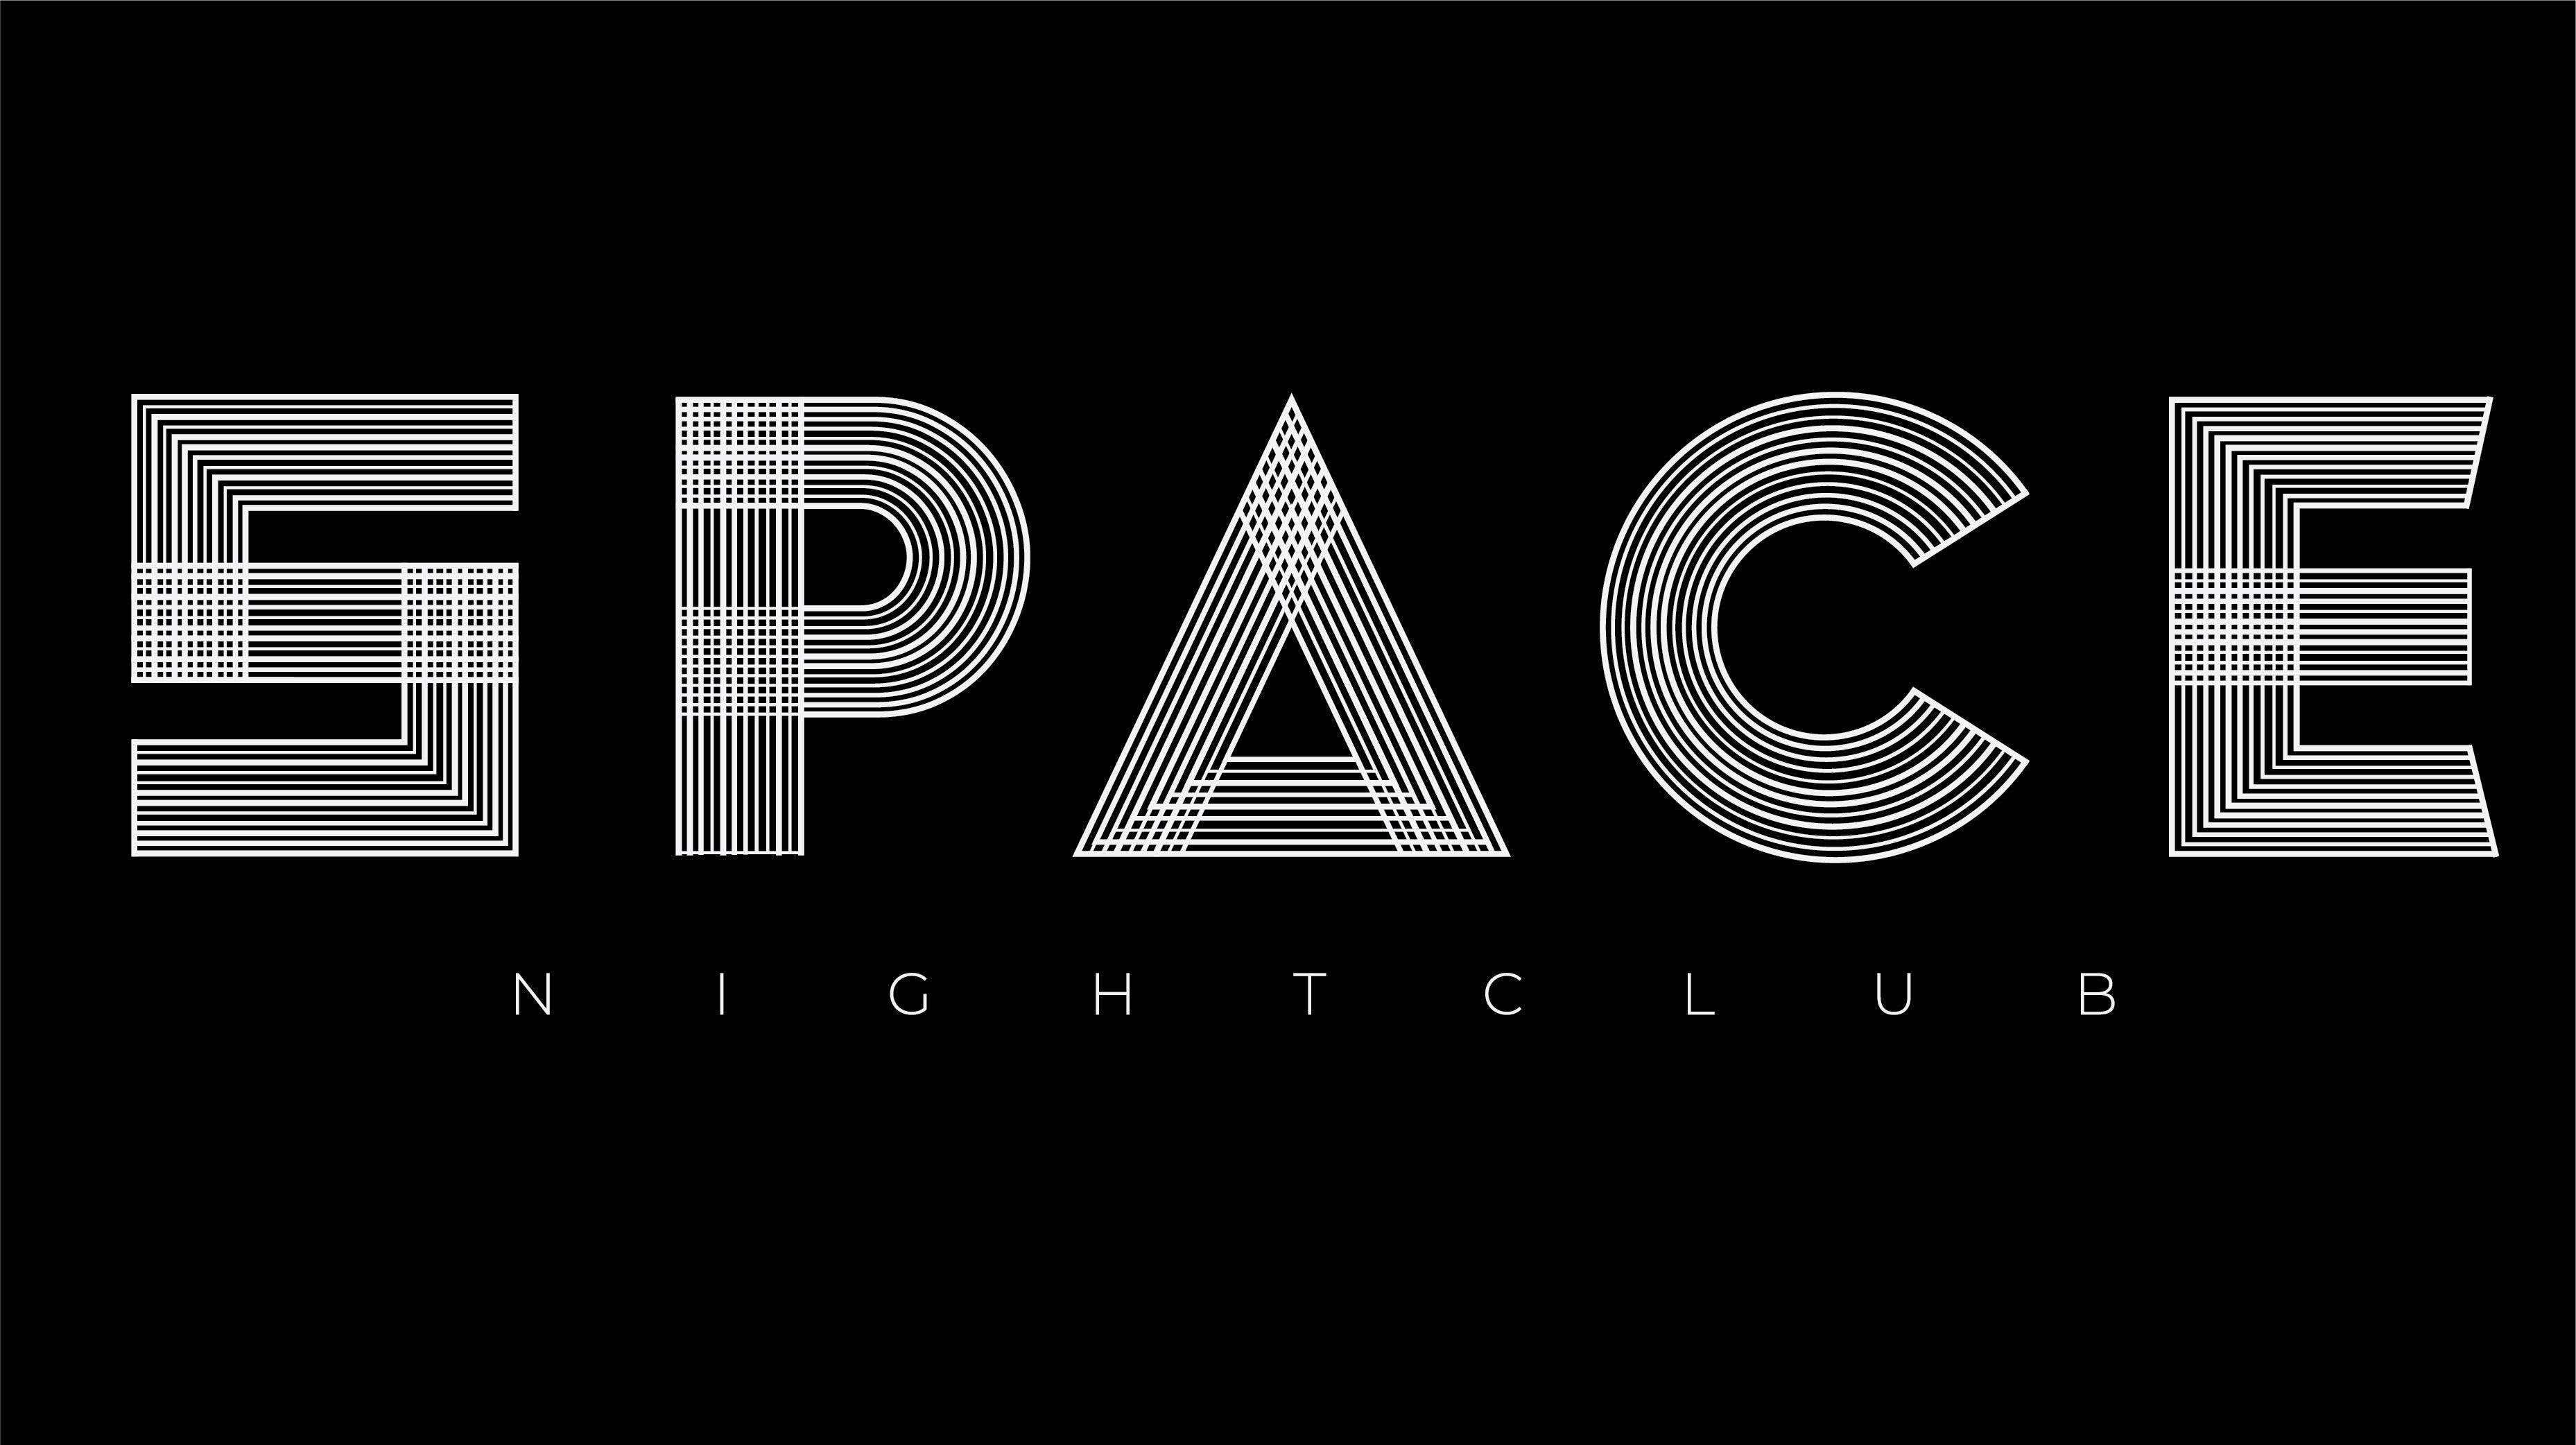 SPACE ON FRIDAY NIGHTS - FREE ENTRY BEFORE 11:30 w/RSVP. FOR SECTIONS CALL 713.259.5725